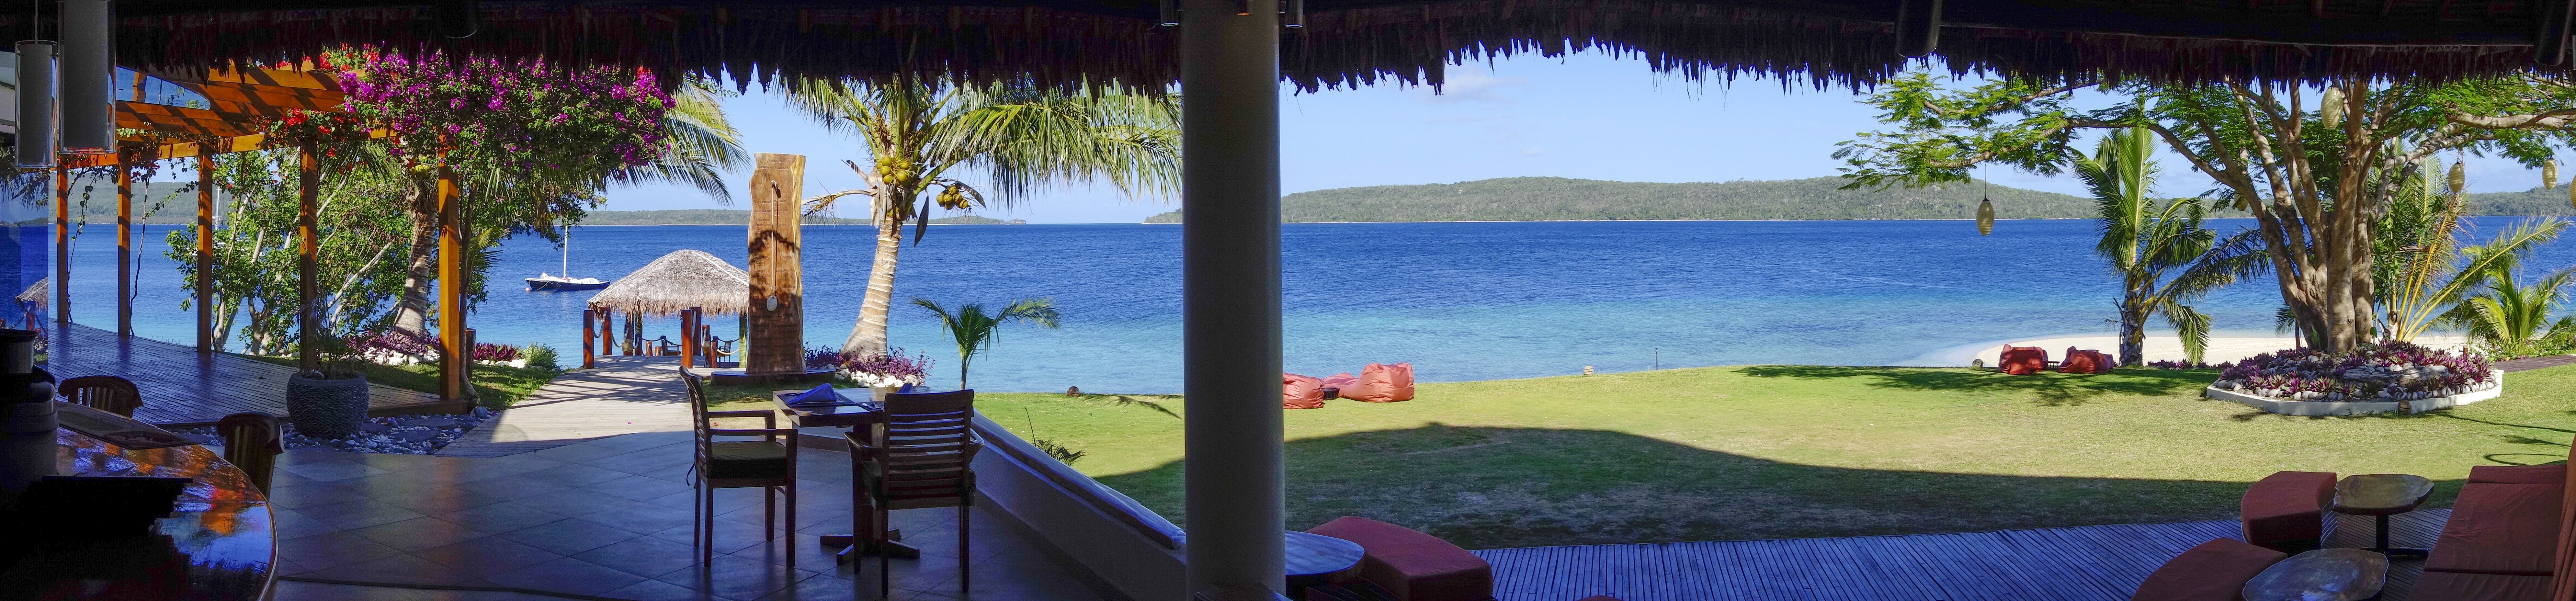 The Havannah, Vanuatu. Award winning Luxury resort  for couples,  romance, weddings and Honeymoon. View from Restaurant